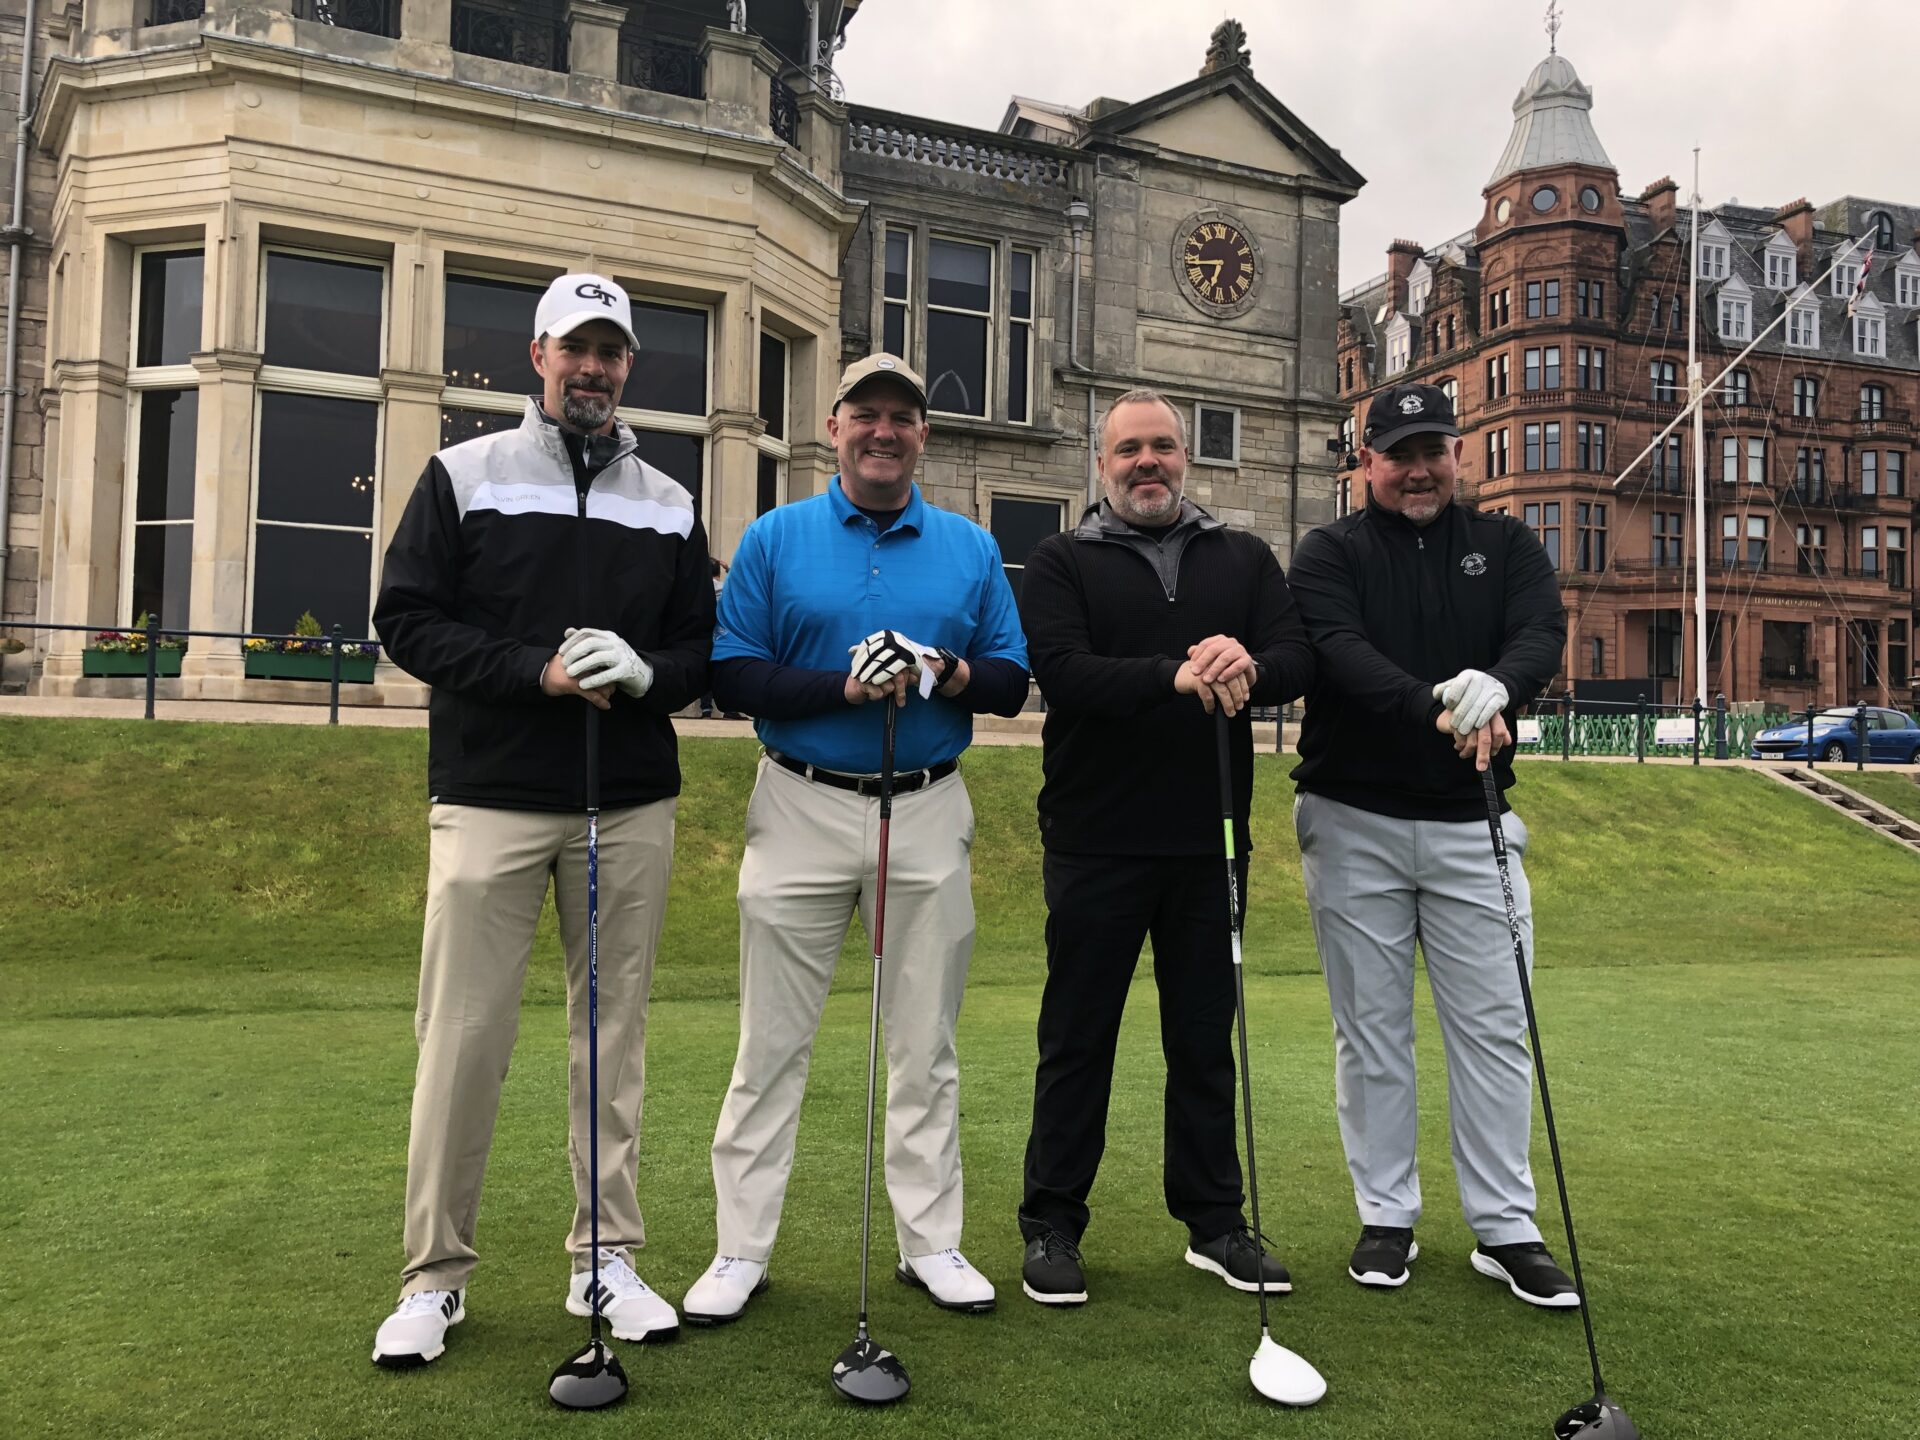 1st Tee – St. Andrews Old Course